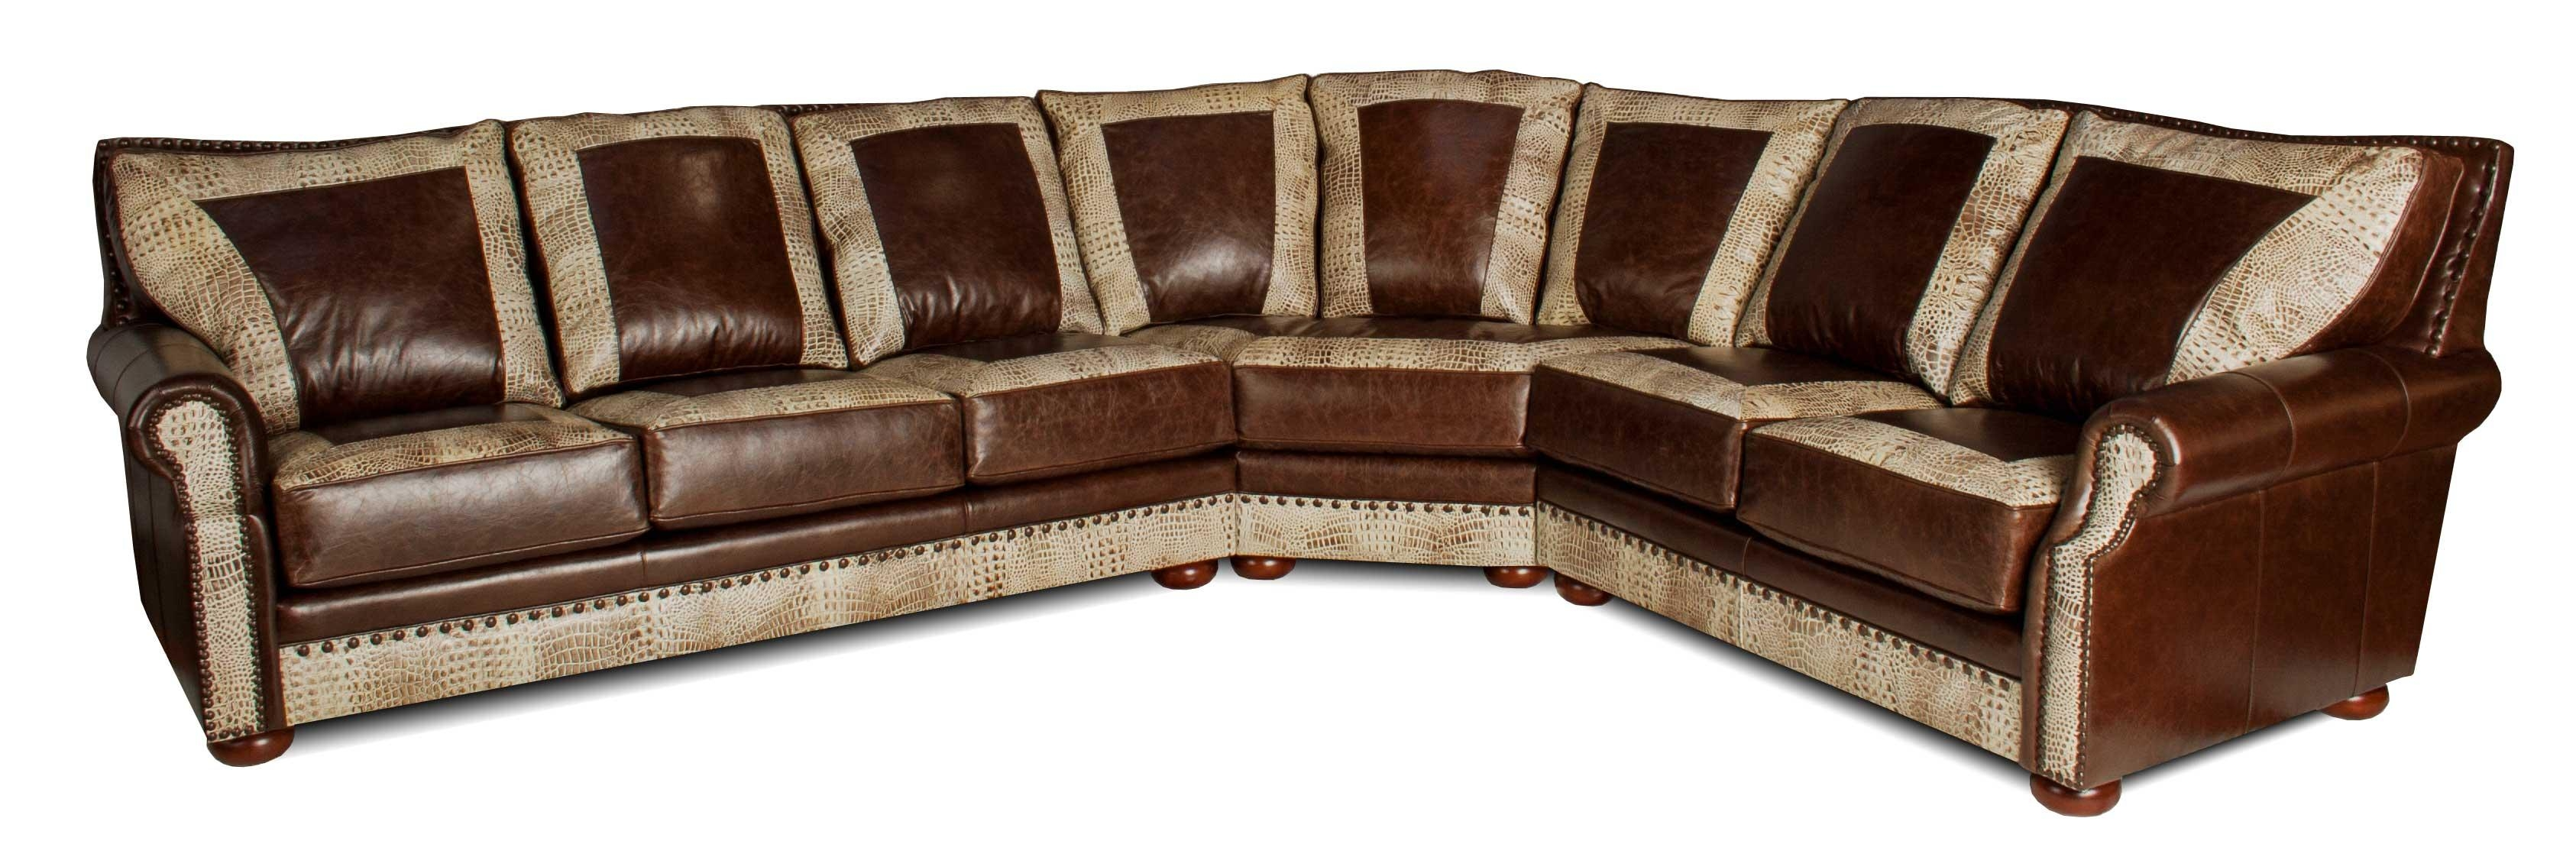 custom made leather sectional sofas 7 sofa table cu2 cuddle